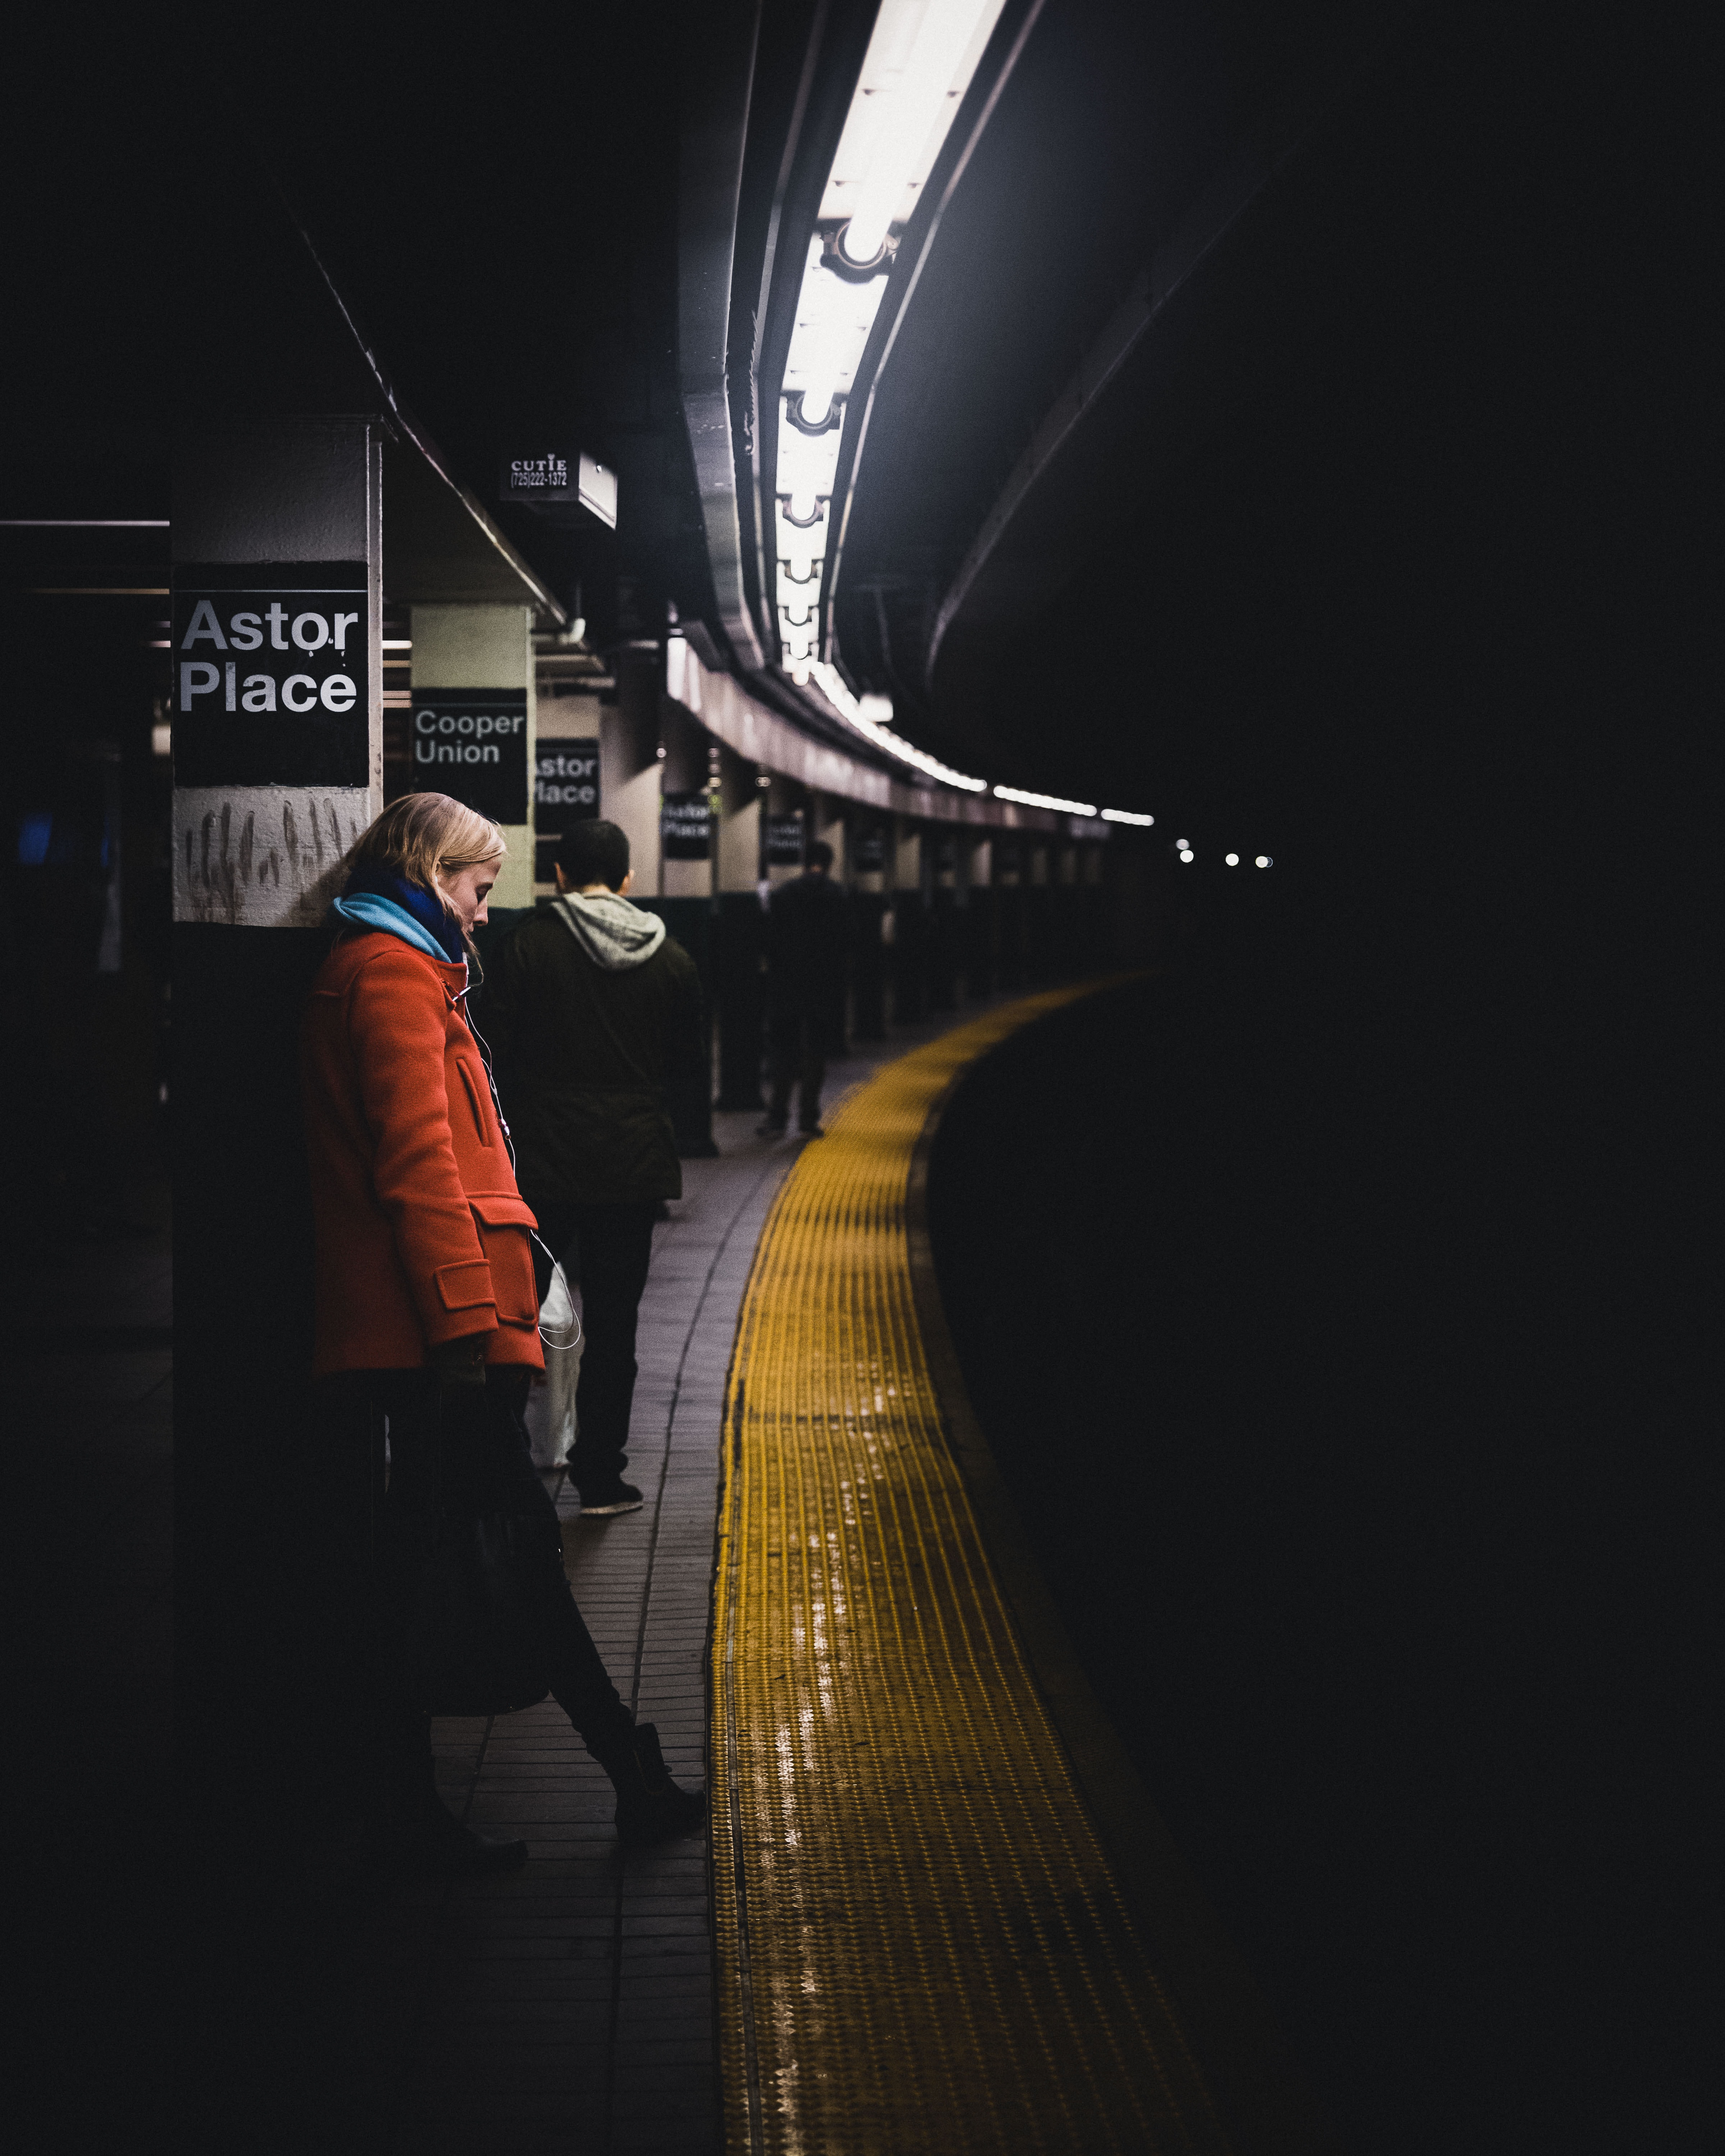 woman wearing red coat leaning on column on train station